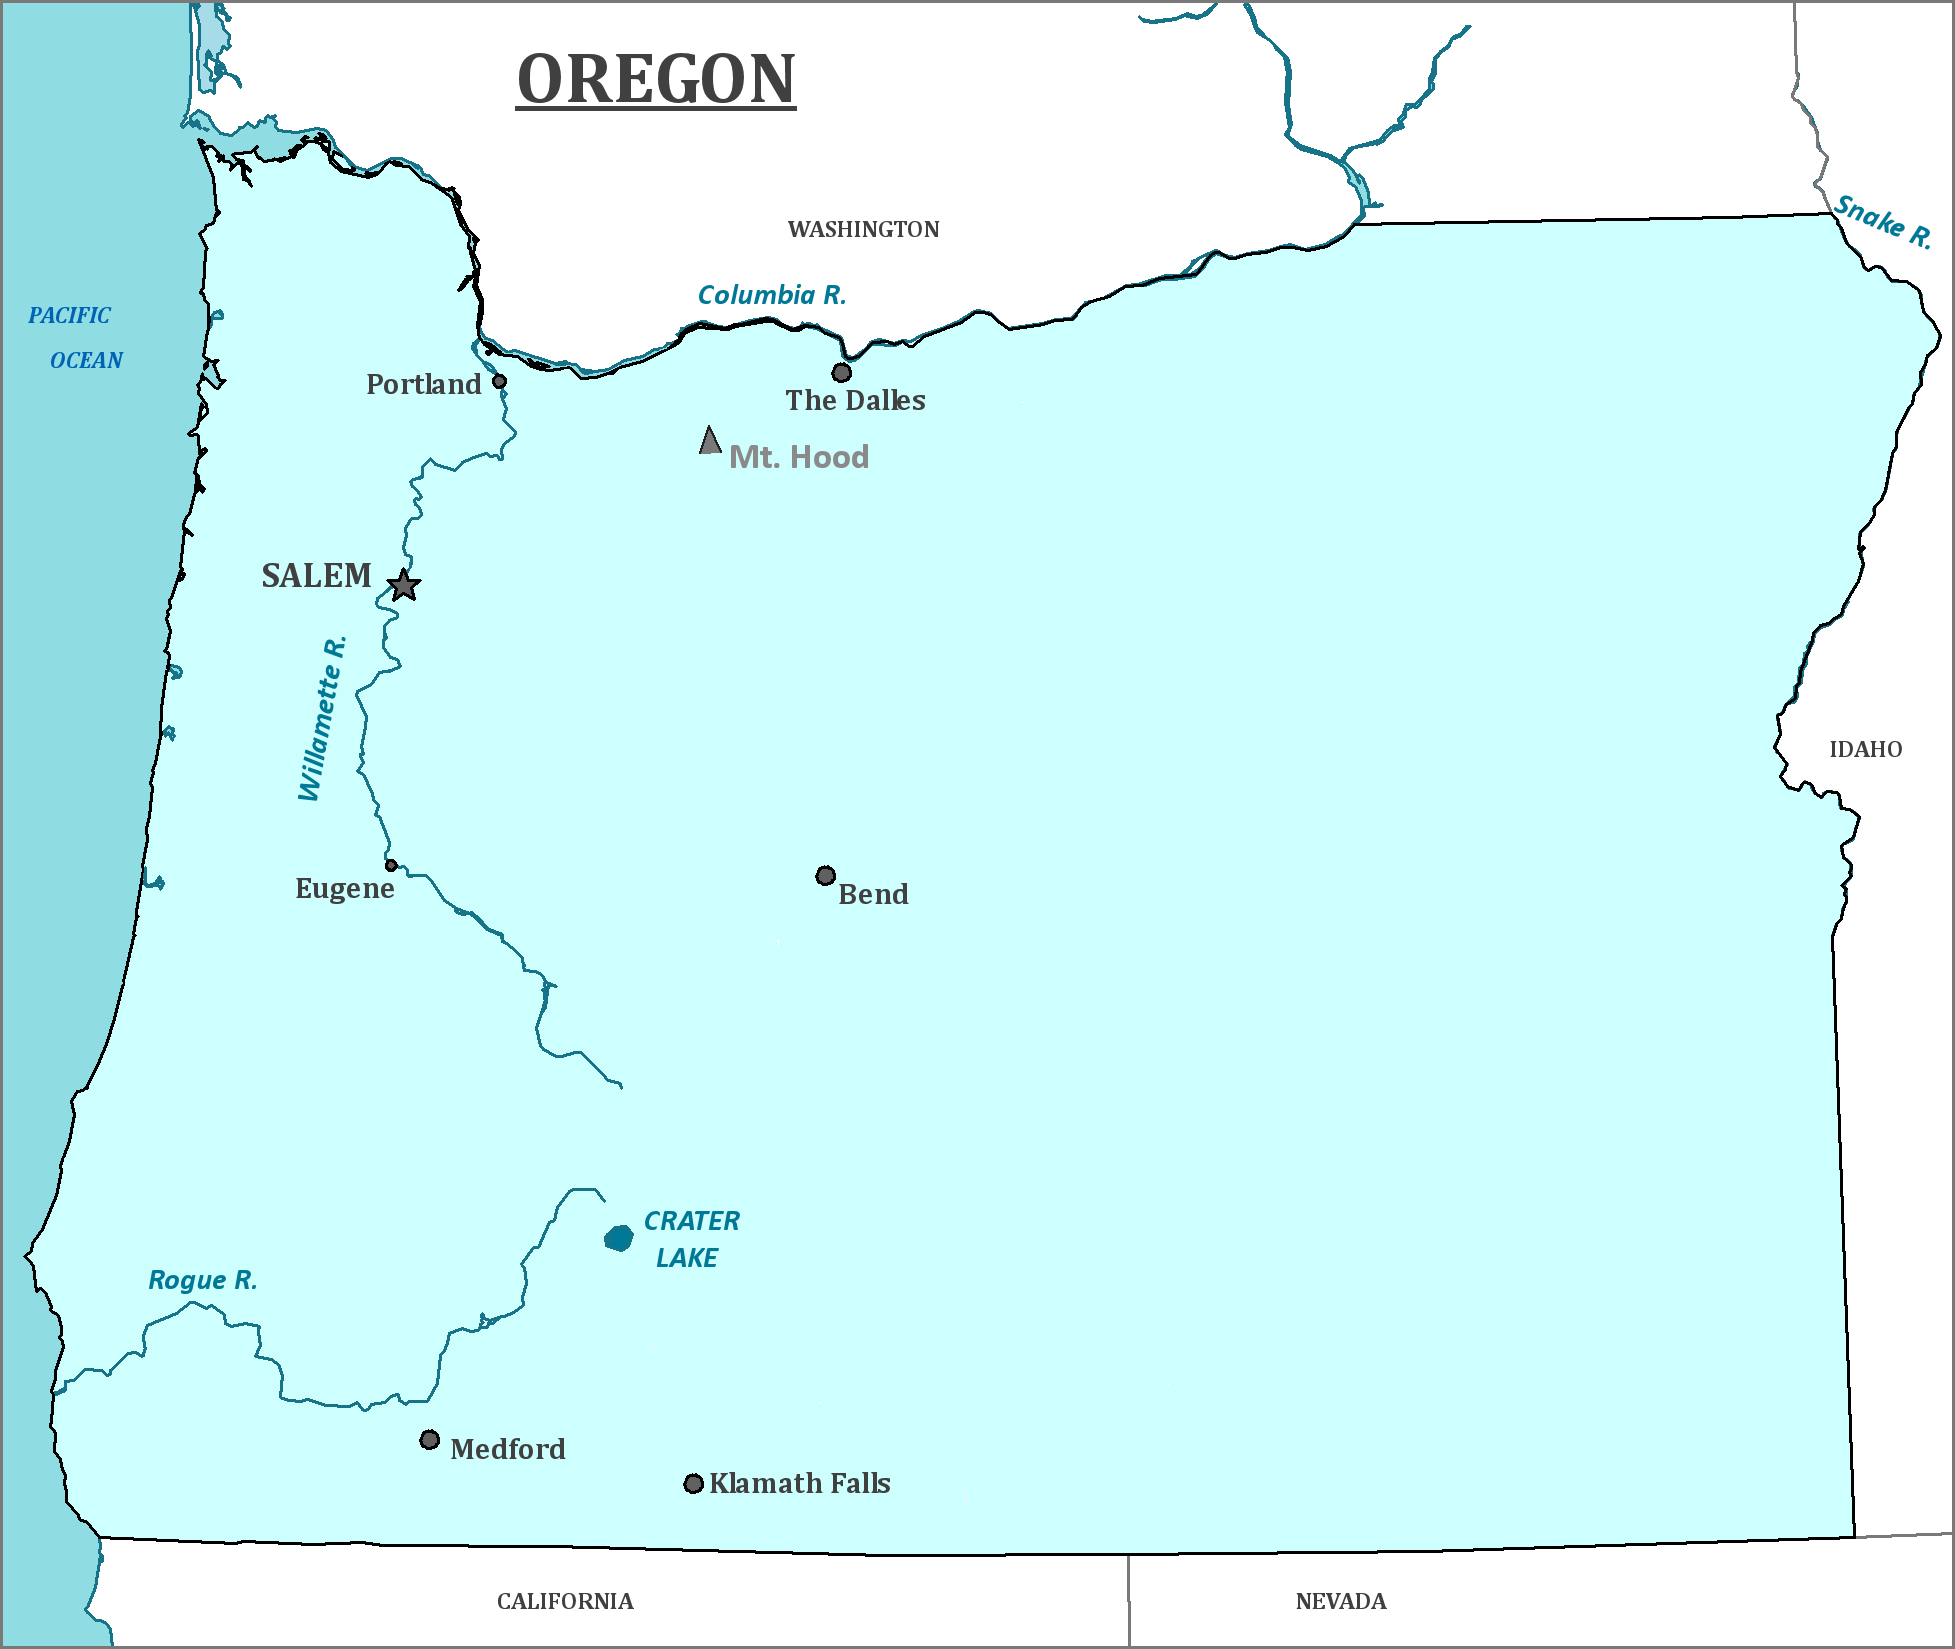 Oregon State Map - Map of Oregon and Information About the State